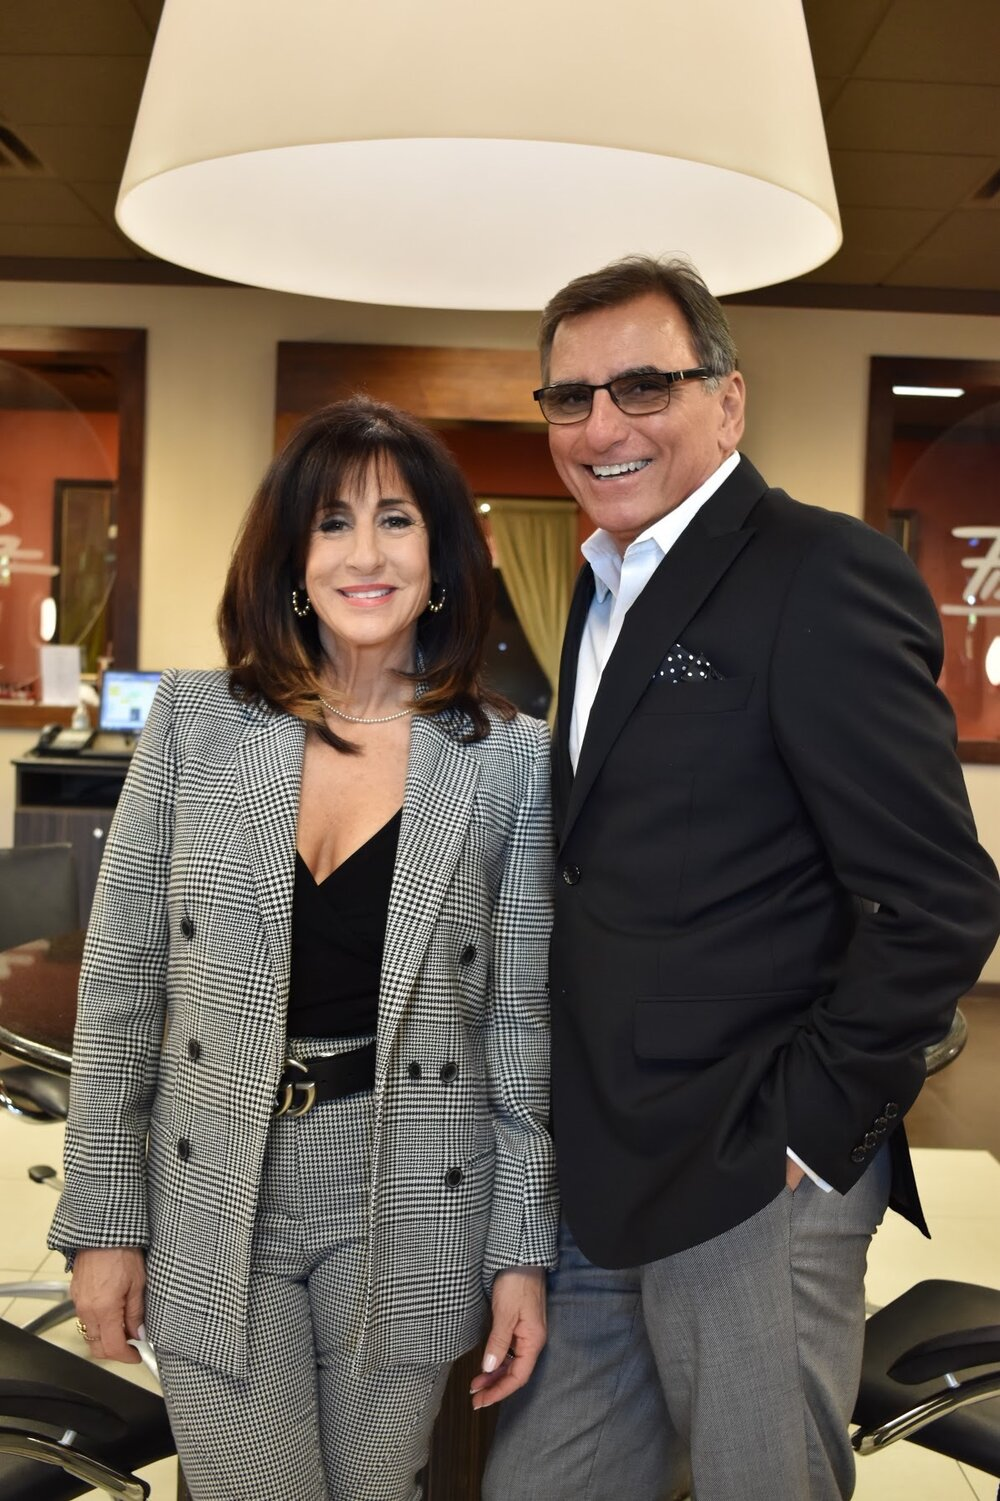 Kristina and Dennis Marquez, Owners of Pizzazz Hair Salon and Spa